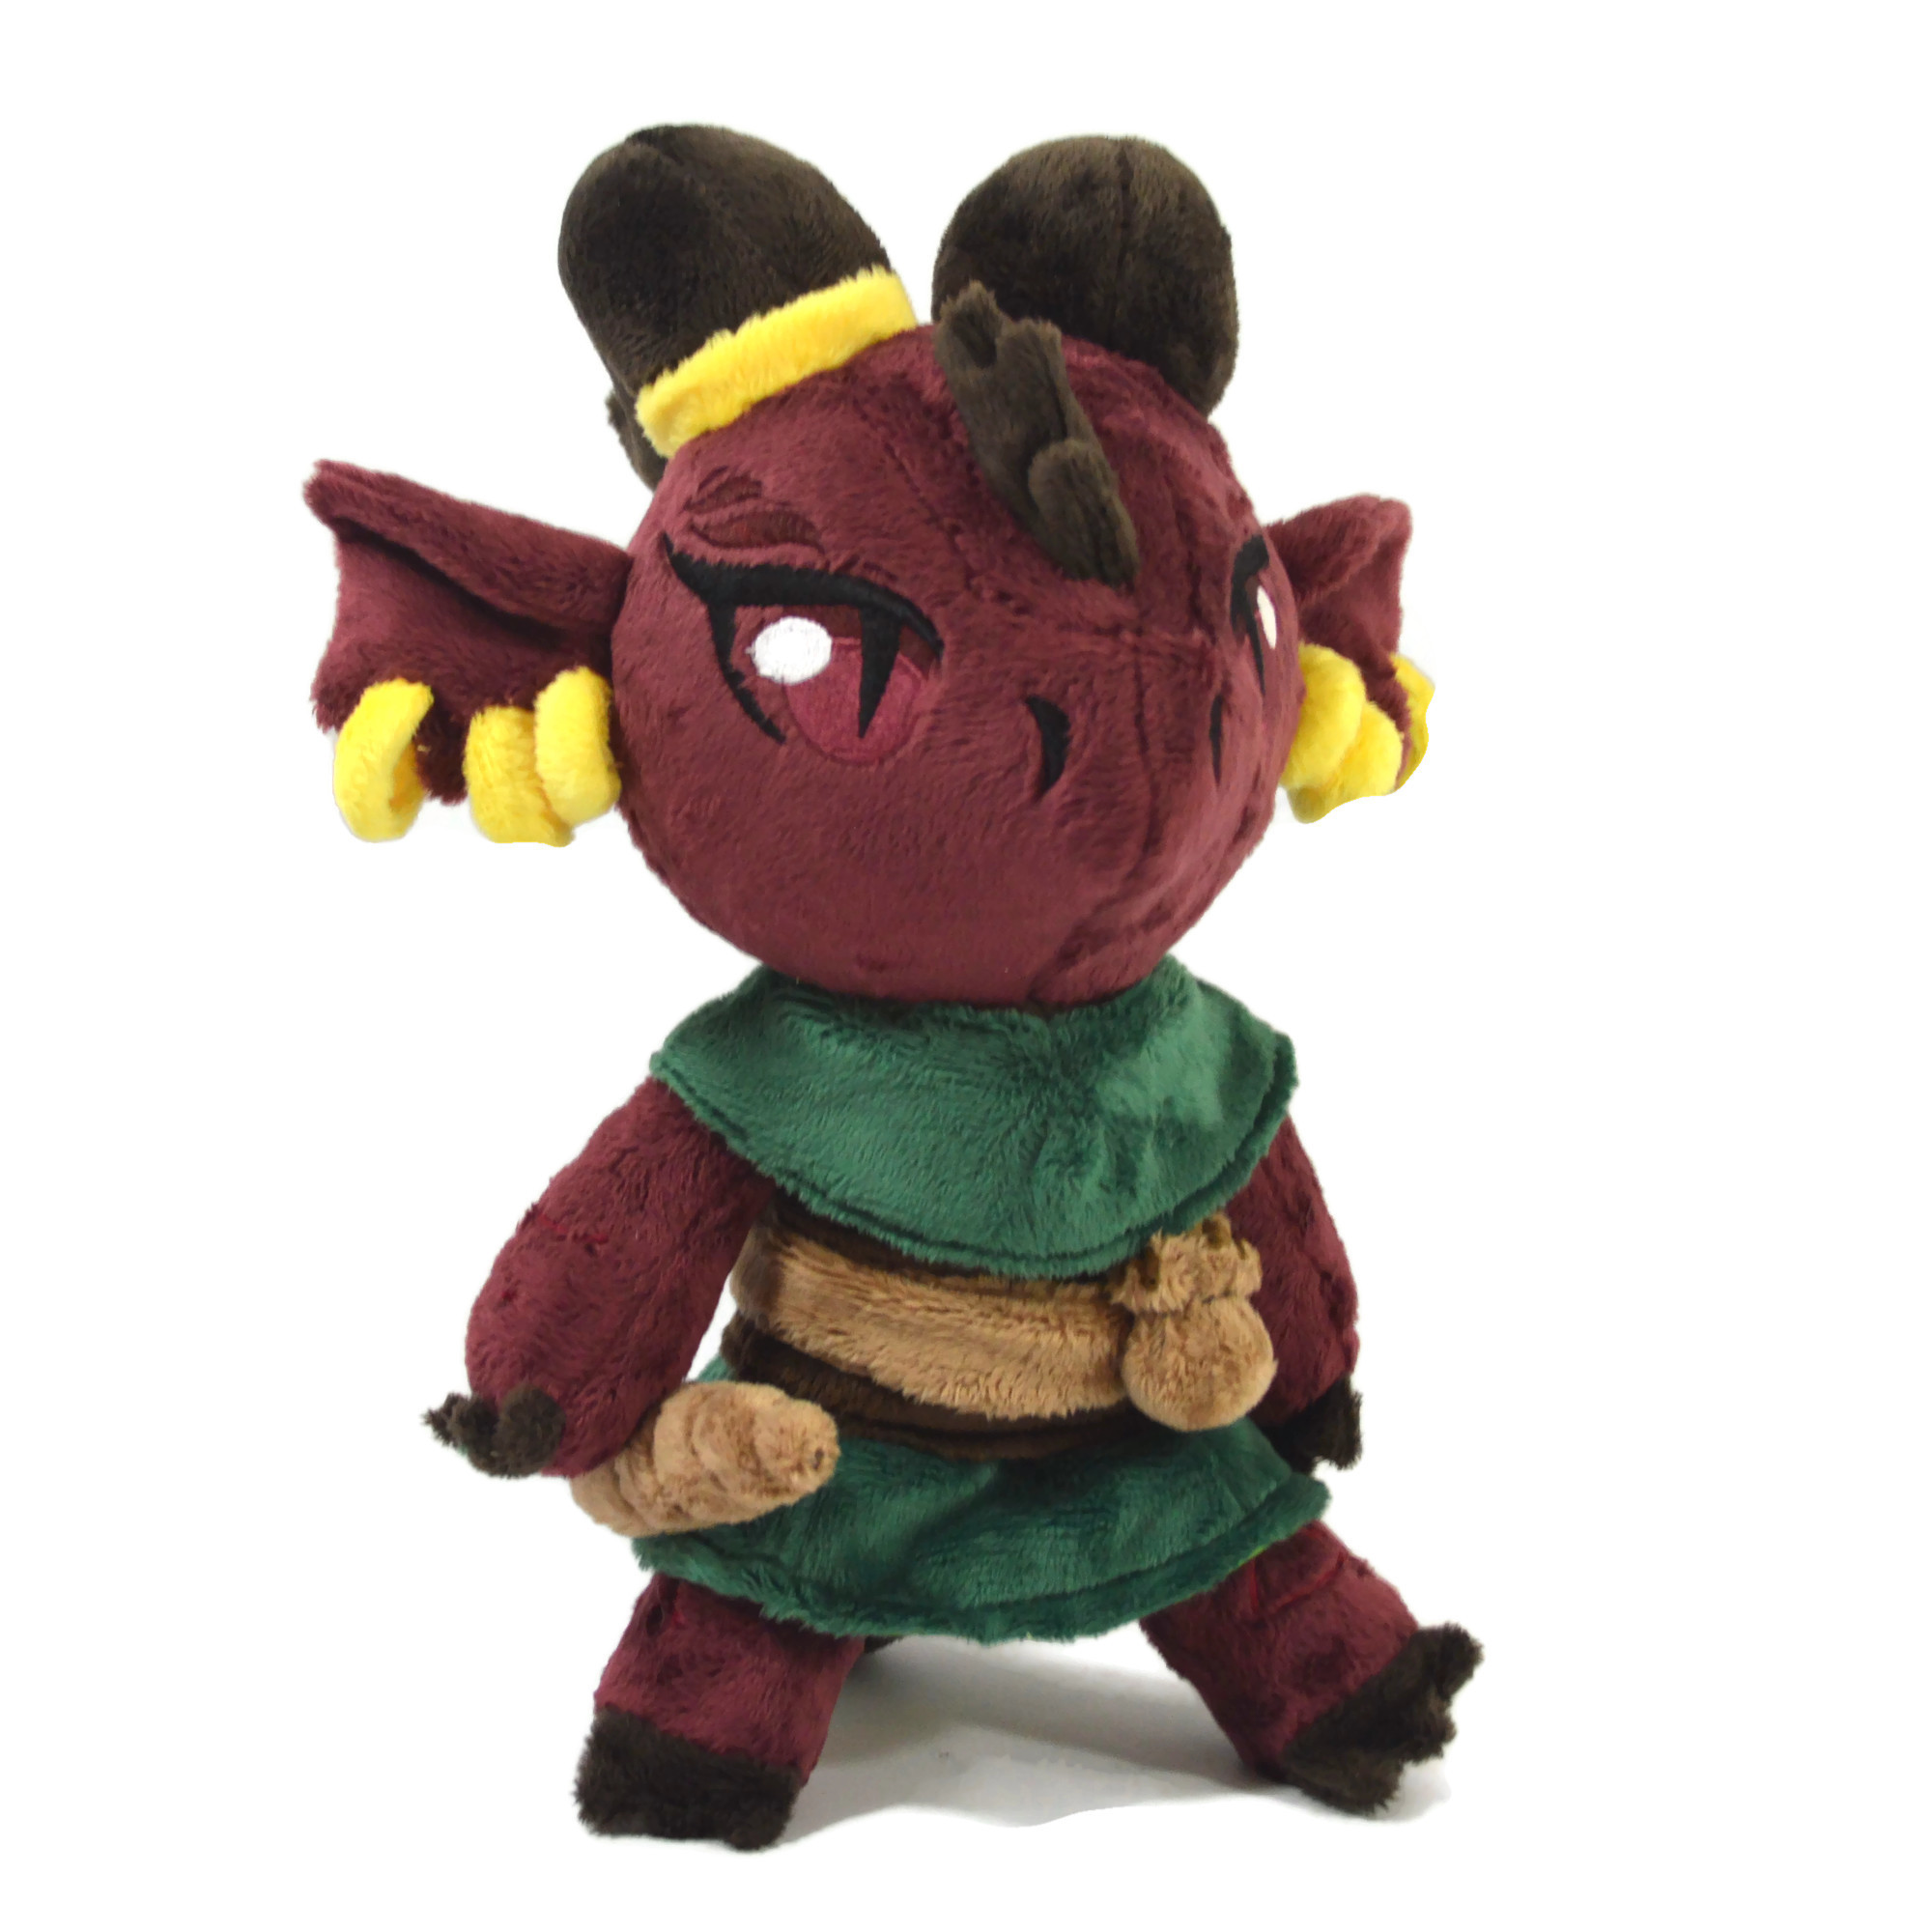 A red Kobold plush with brown horns and a green outfit.